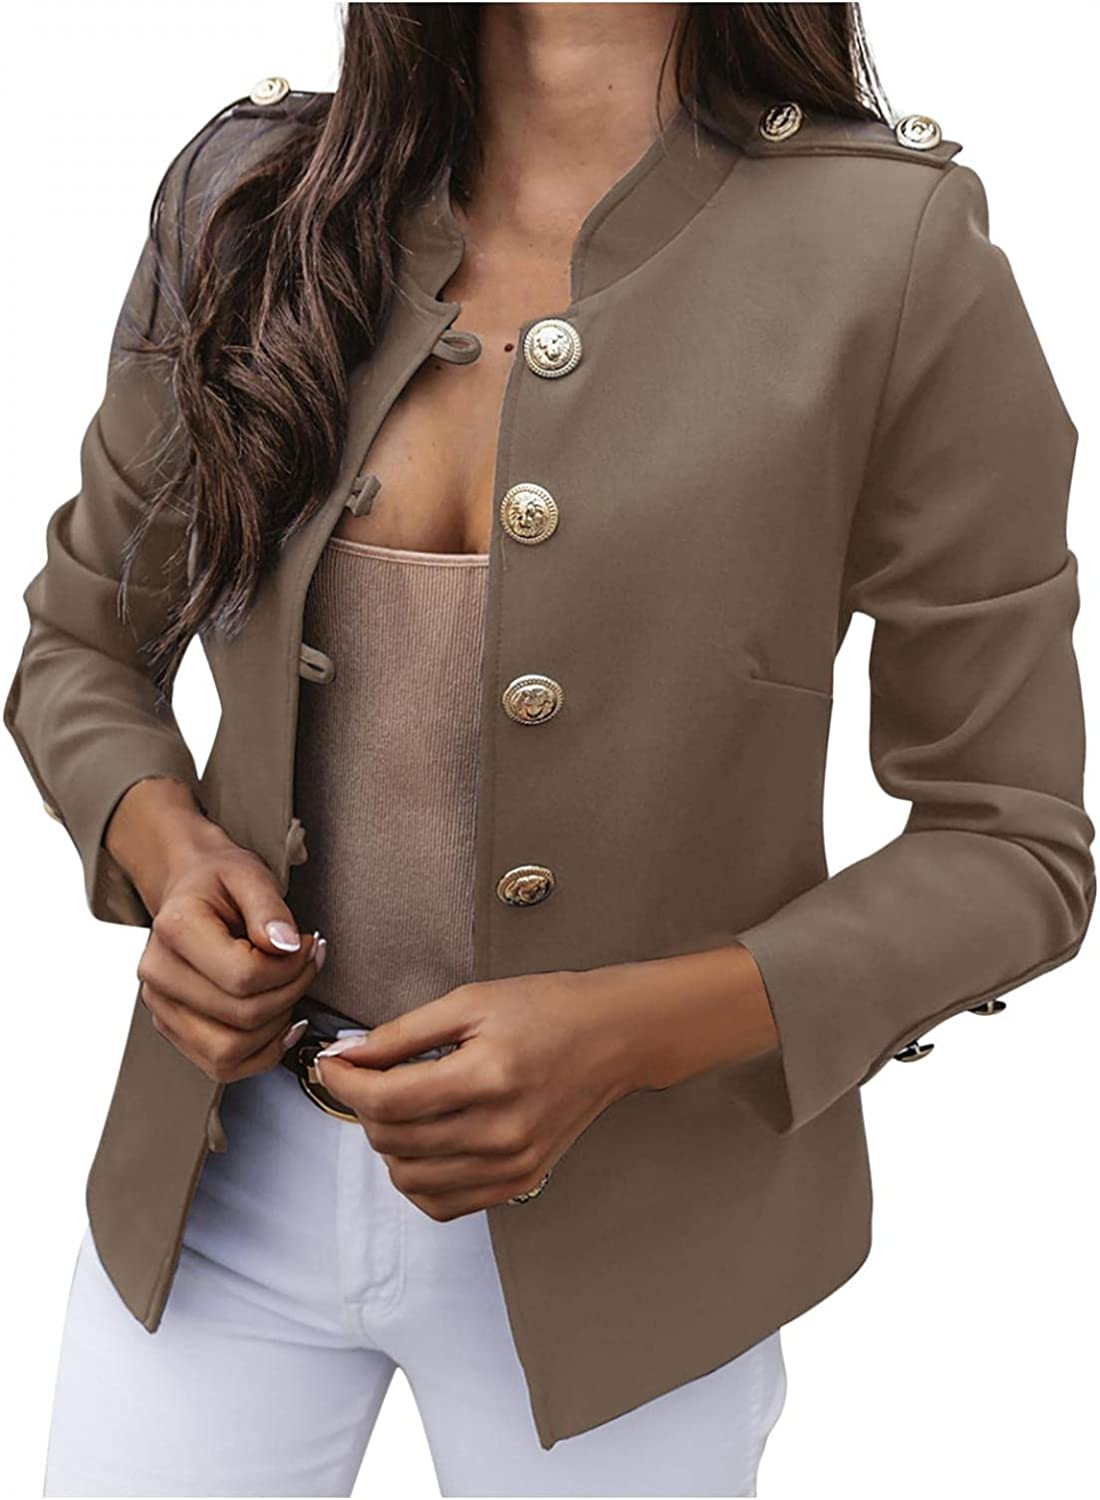 Jackets for Women Button Down Solid Color Cardigan Slim-Breasted Suit Short Coat Stand Collar Long-Sleeve Top